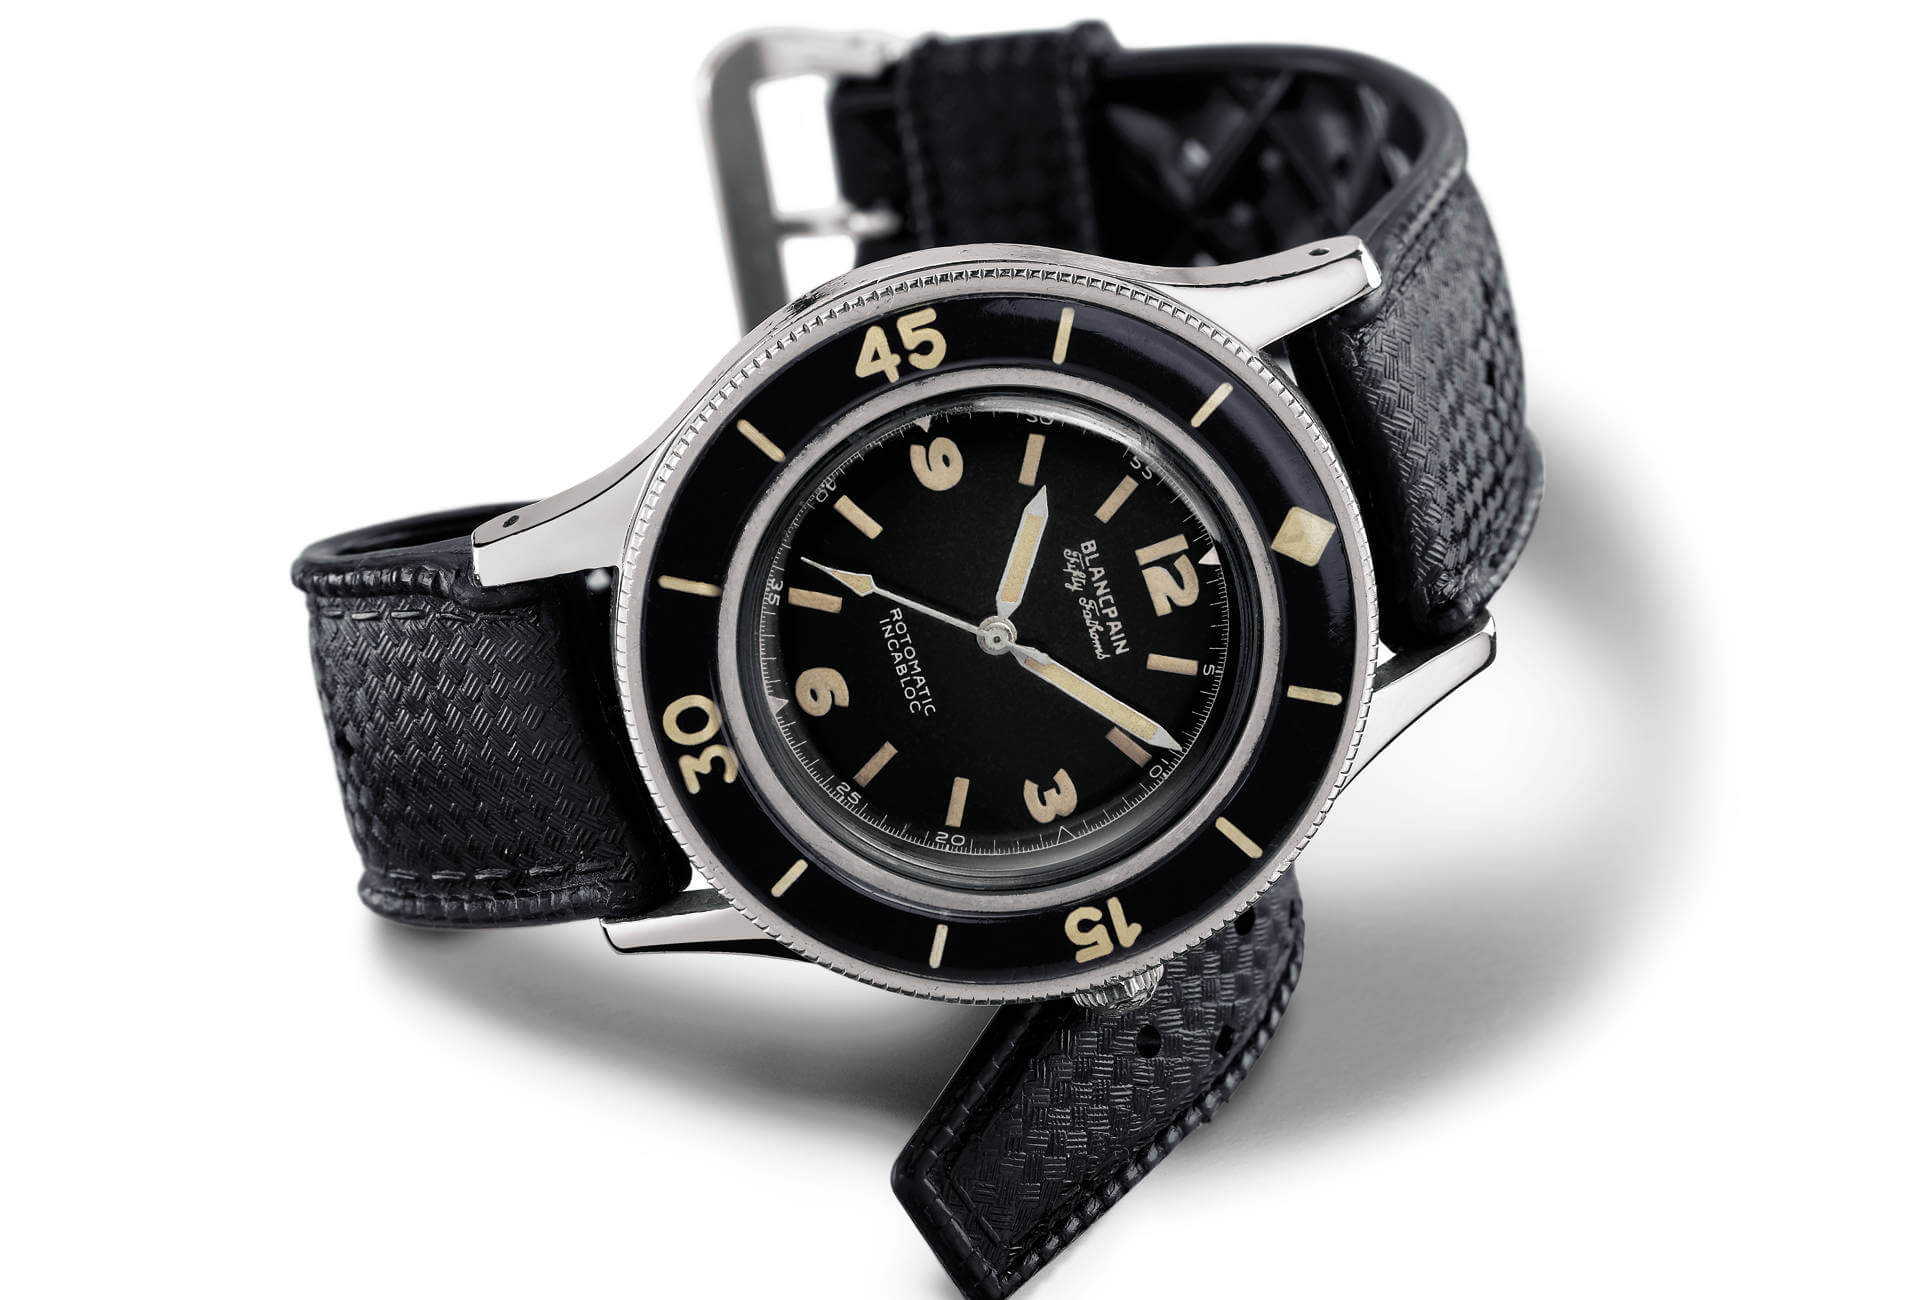 Fifty Fathoms, a watch for the elite – FHH Journal